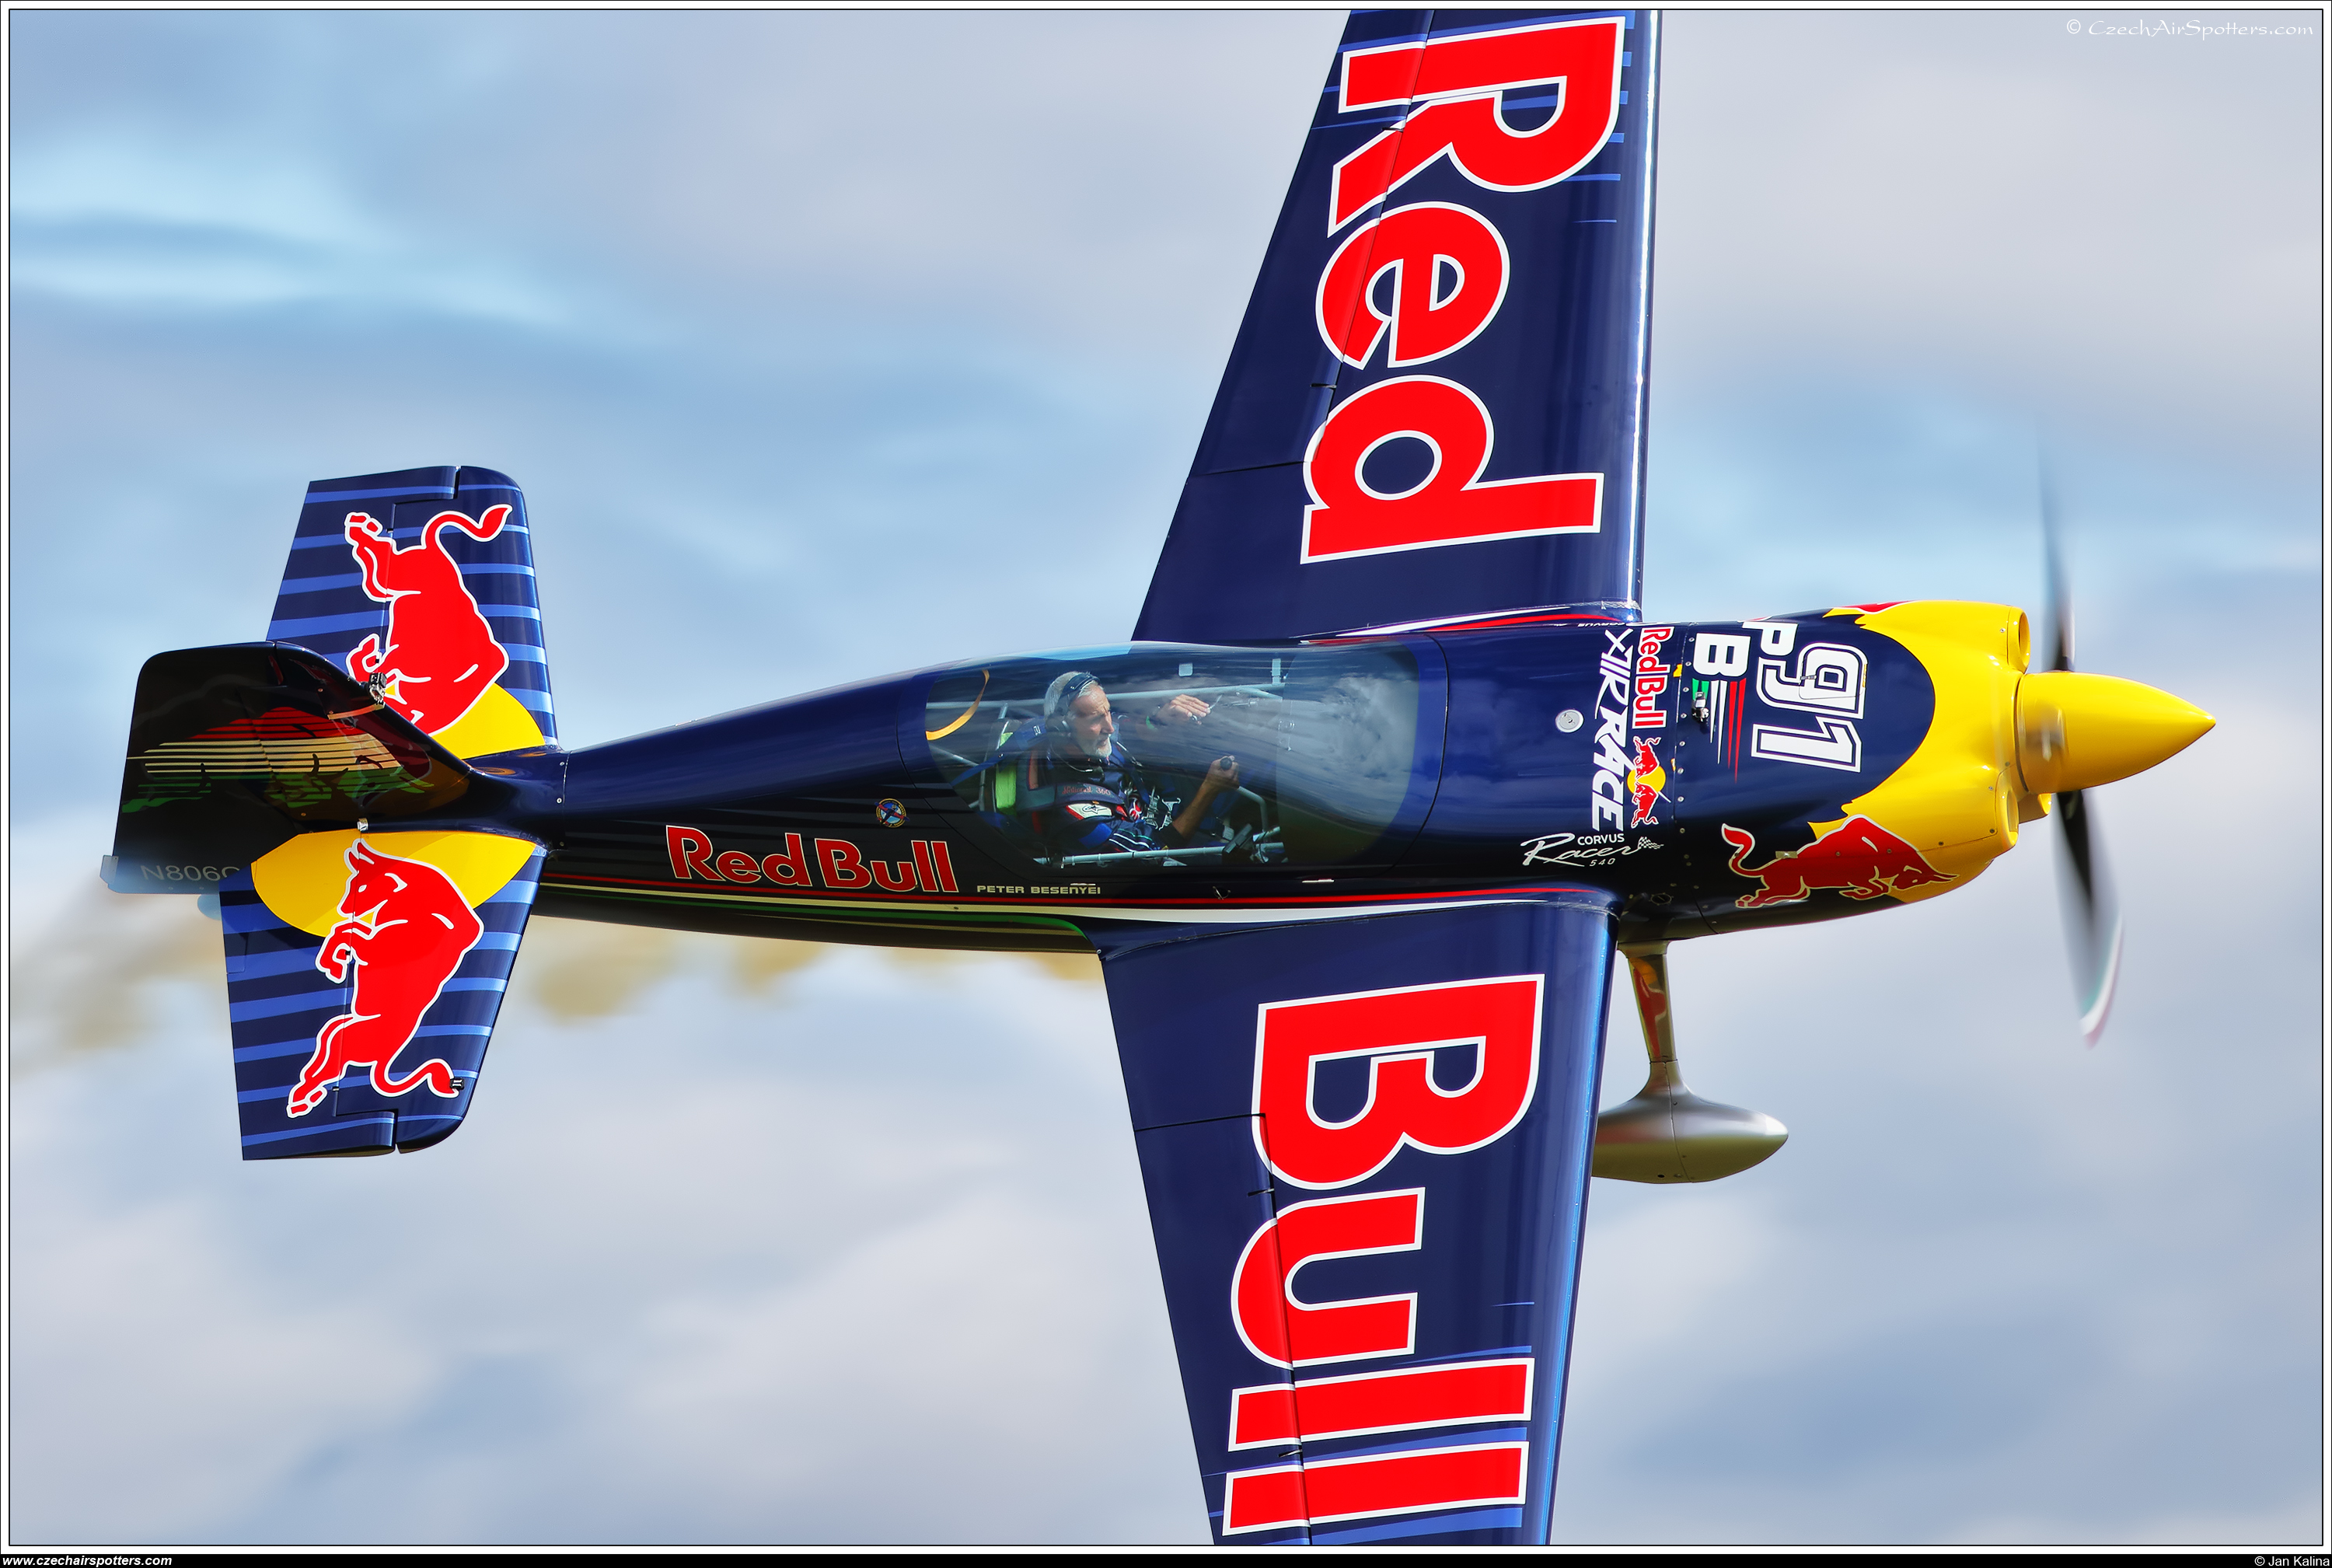 Red Bull Racing Team – Corvus Racer 540 N806CR